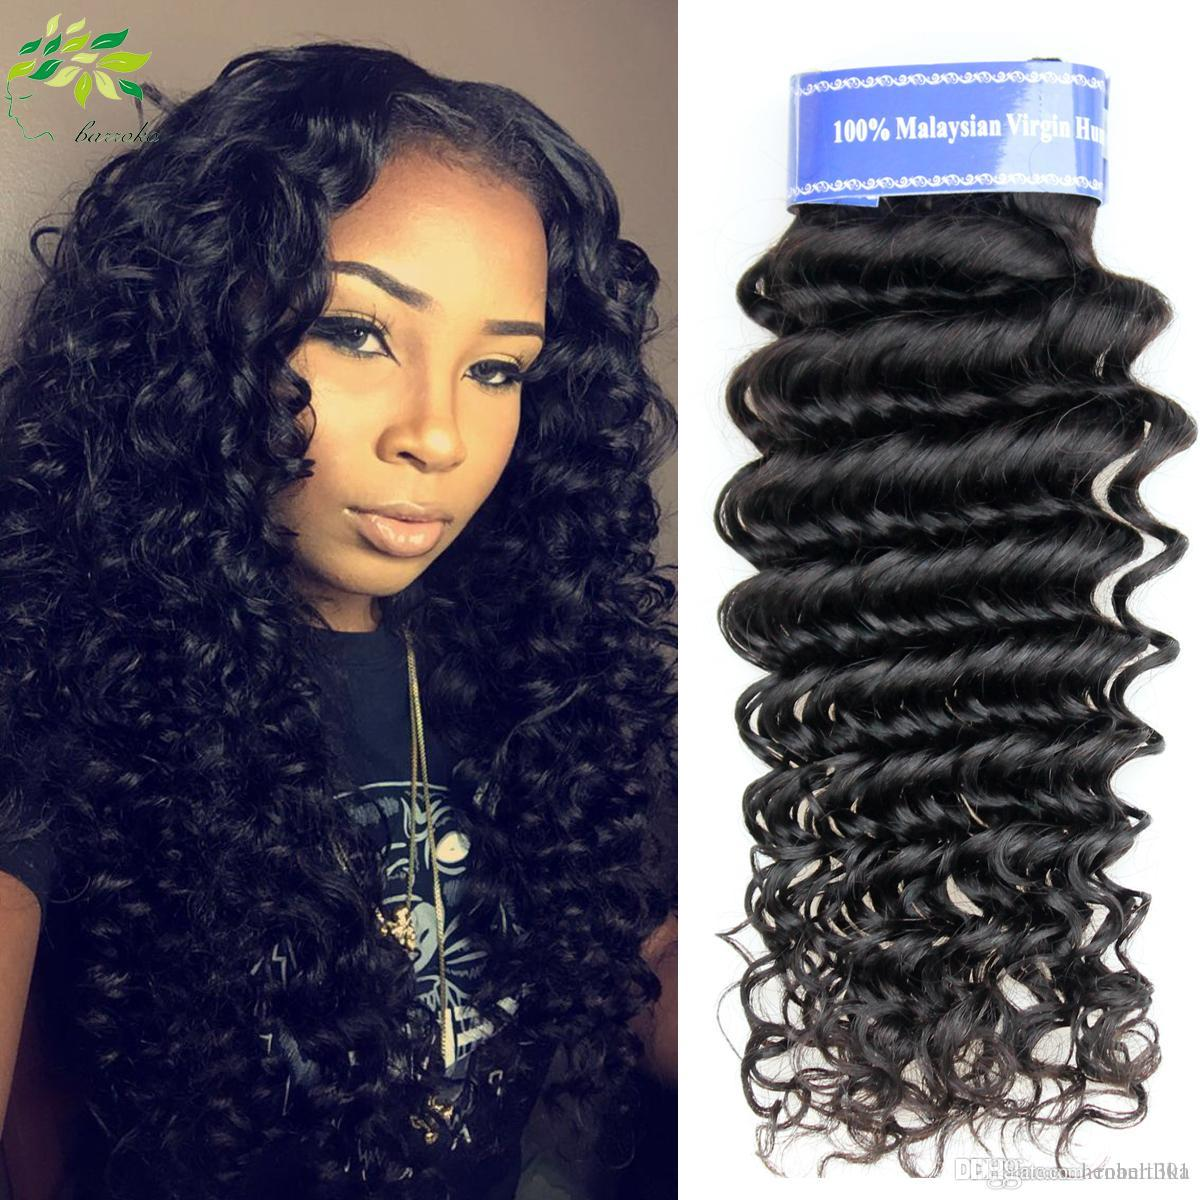 Cheap wholesale grade 7a malaysian virgin hair weave malaysian cheap wholesale grade 7a malaysian virgin hair weave malaysian curly virgin hair 100g bundle malaysian deep curly style hair weaves styles weave hair styles pmusecretfo Images